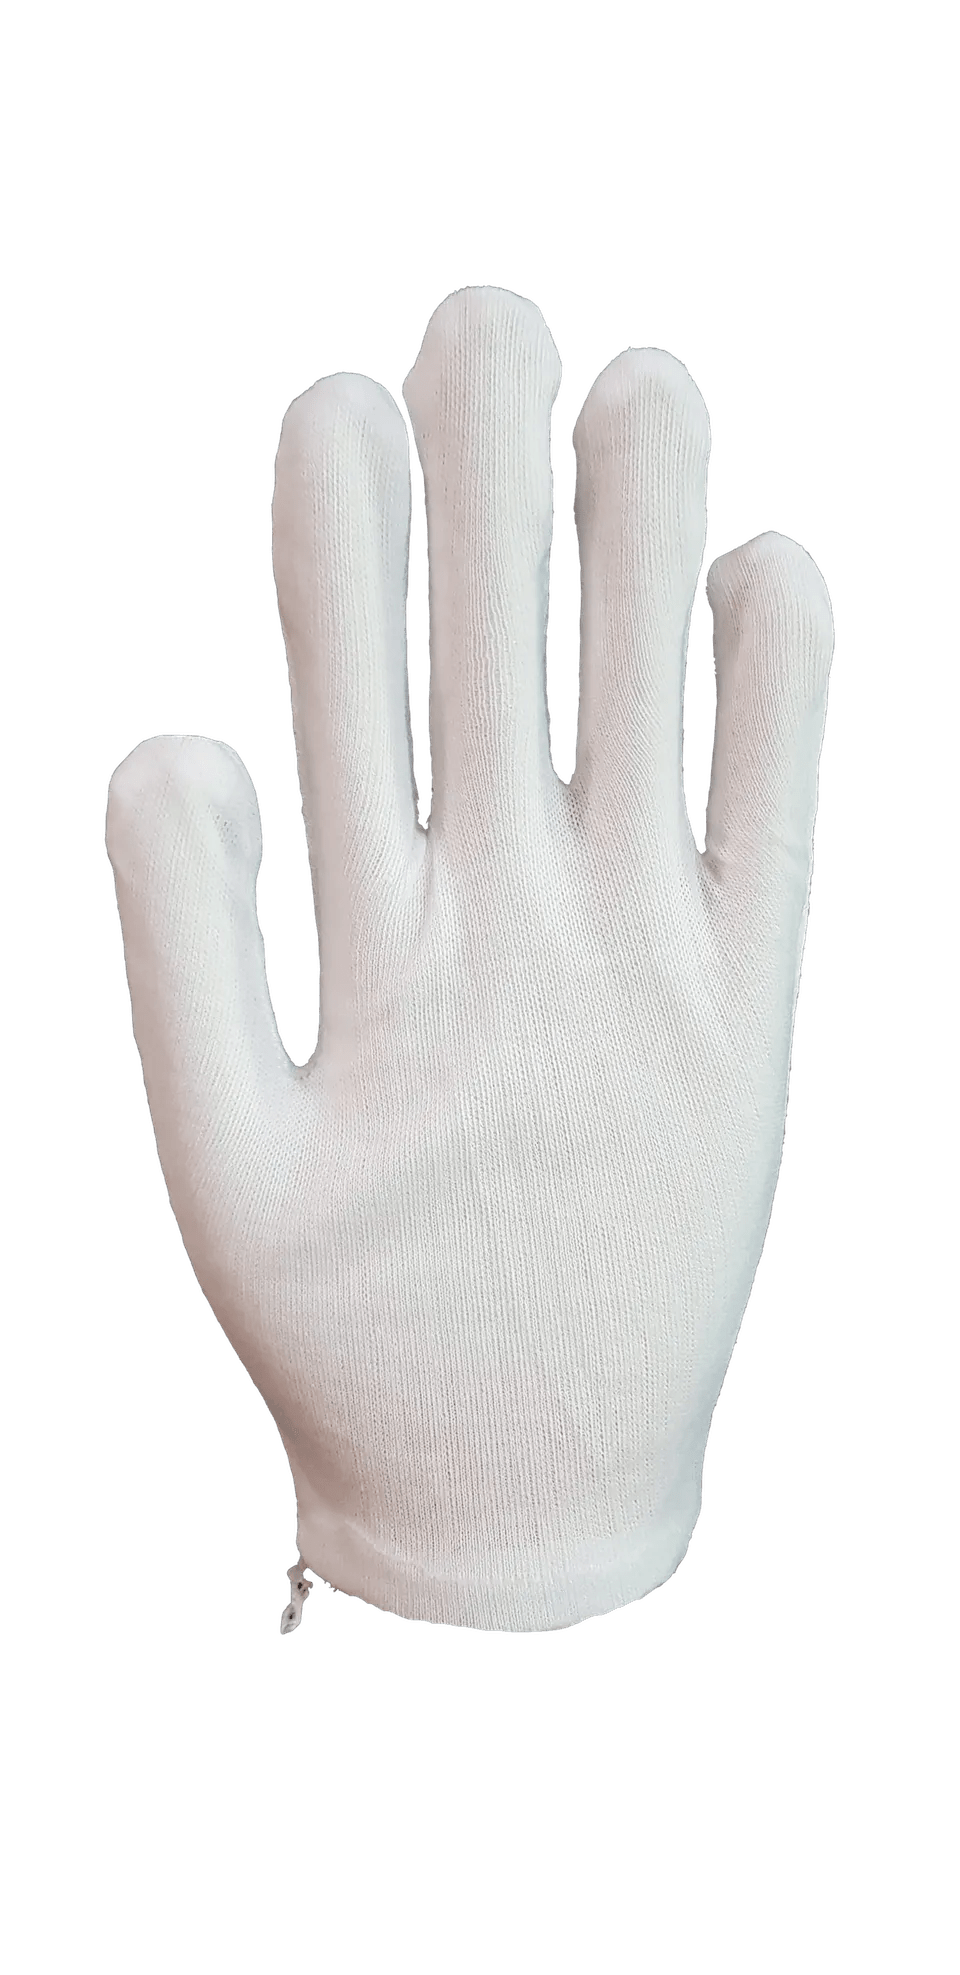 Manufacturing Supplier In Johor Malaysia Glove Ppe Supplier Ppe Manufacturing Sdn Bhd